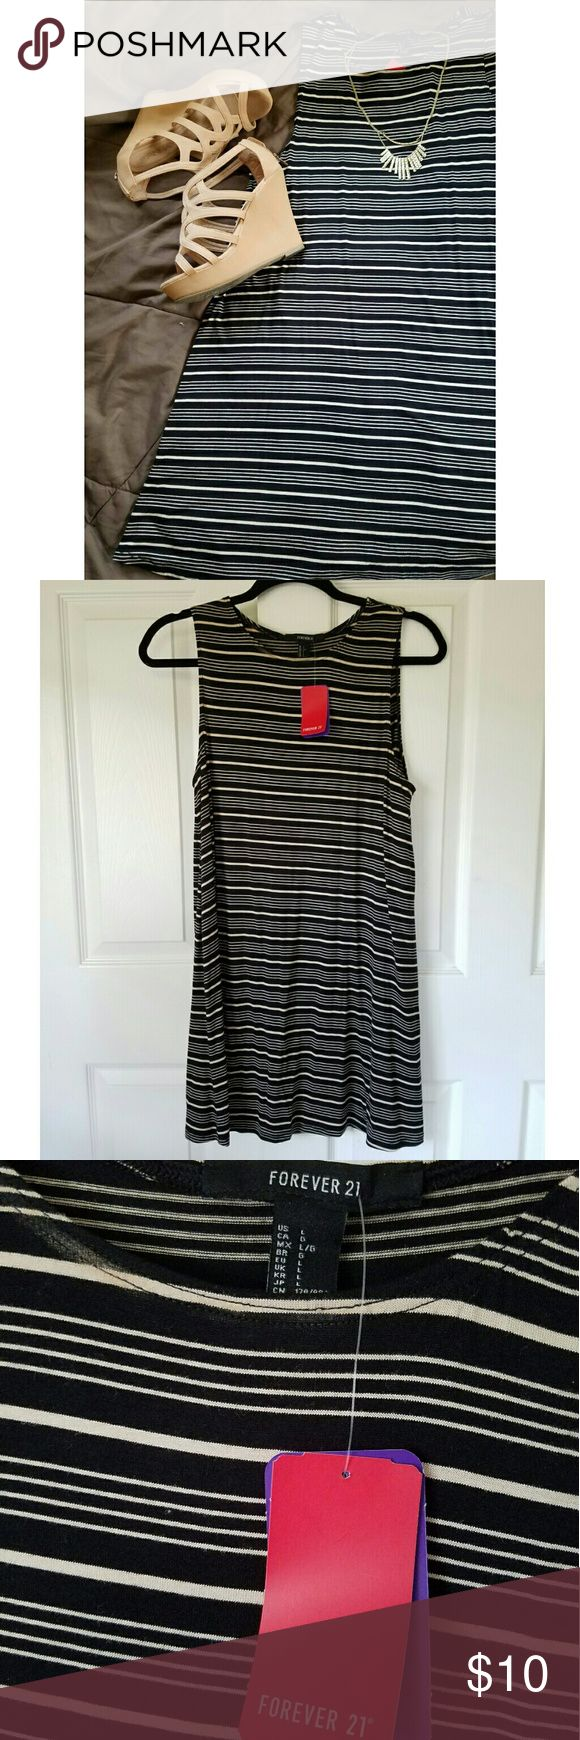 Forever 21 Striped Mini Dress Forever 21 Striped Mini Dress.   Unused. Excellent condition. Forever 21 Dresses Mini